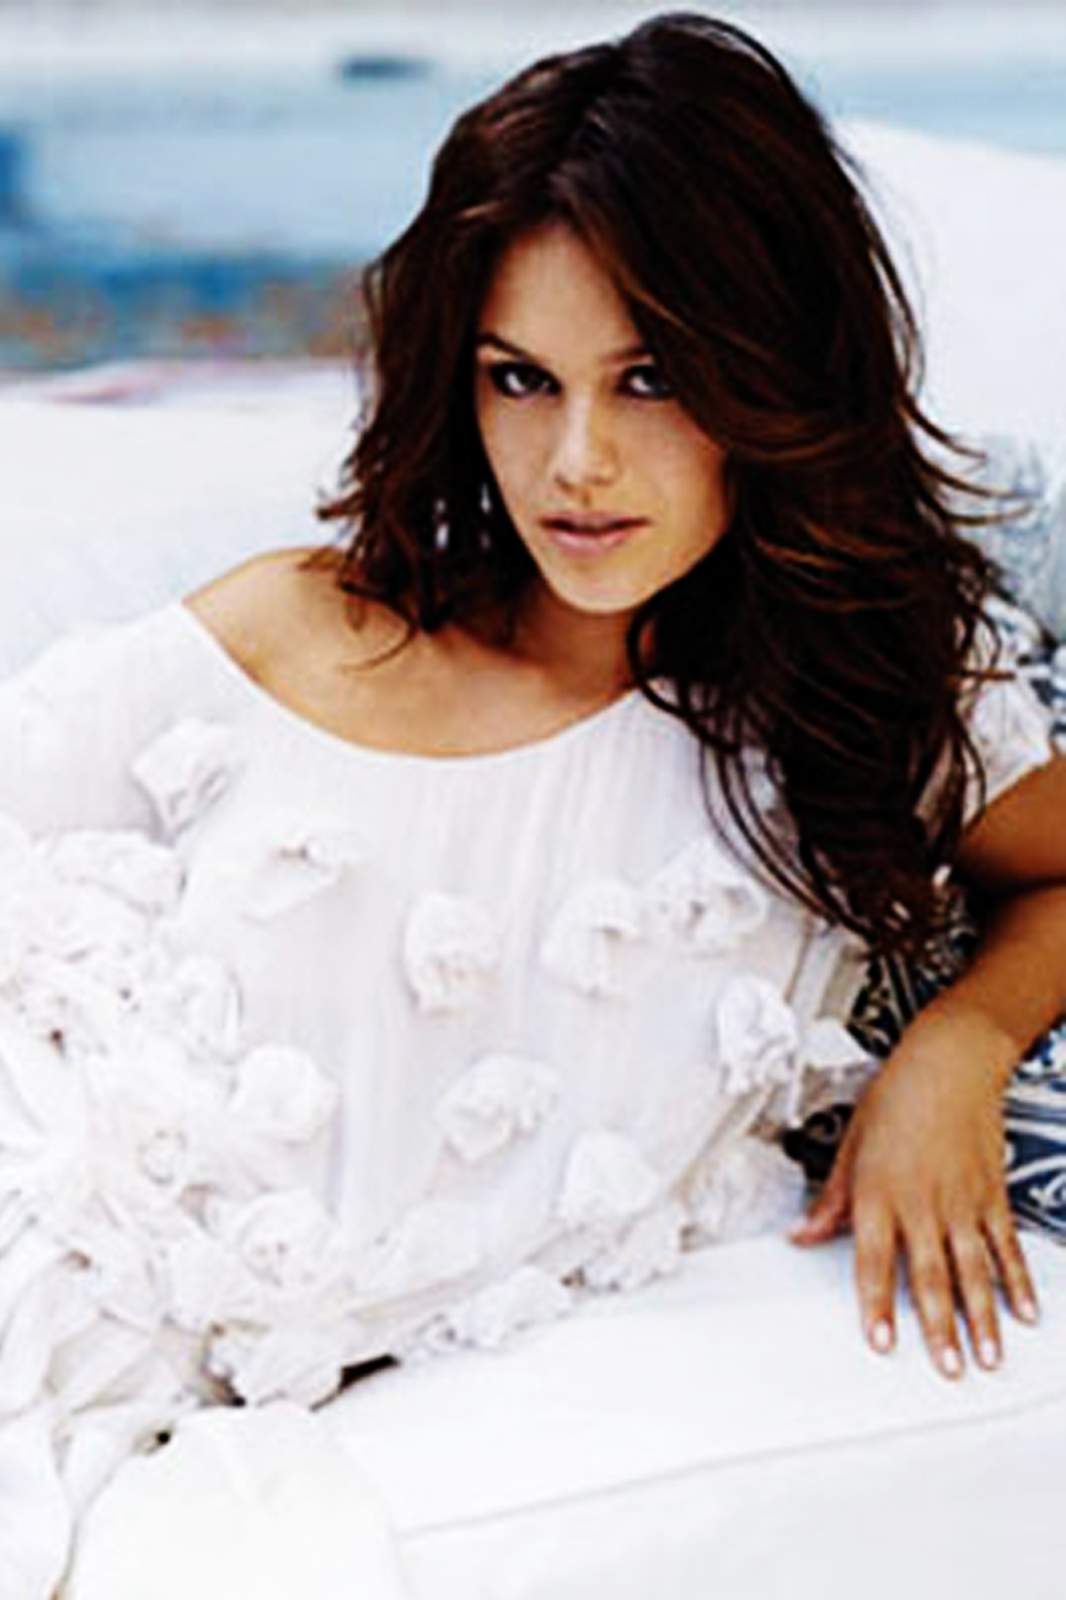 rachel bilson latest wallpapers 2013 - photo #8